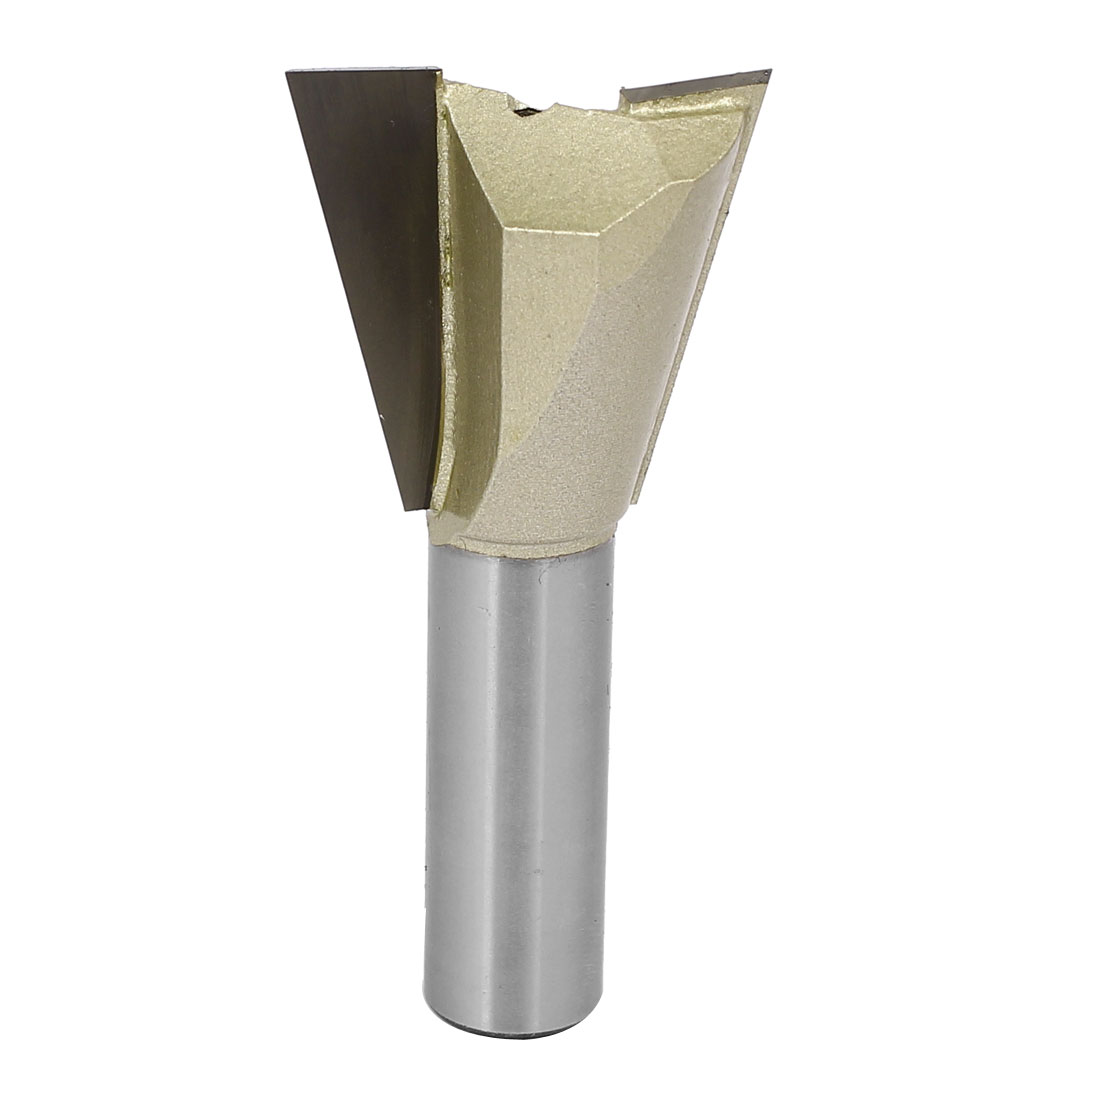 1/2-inch Round Shank 1-1/4-inch Cutting Dia Woodwork Dovetail Router Bit